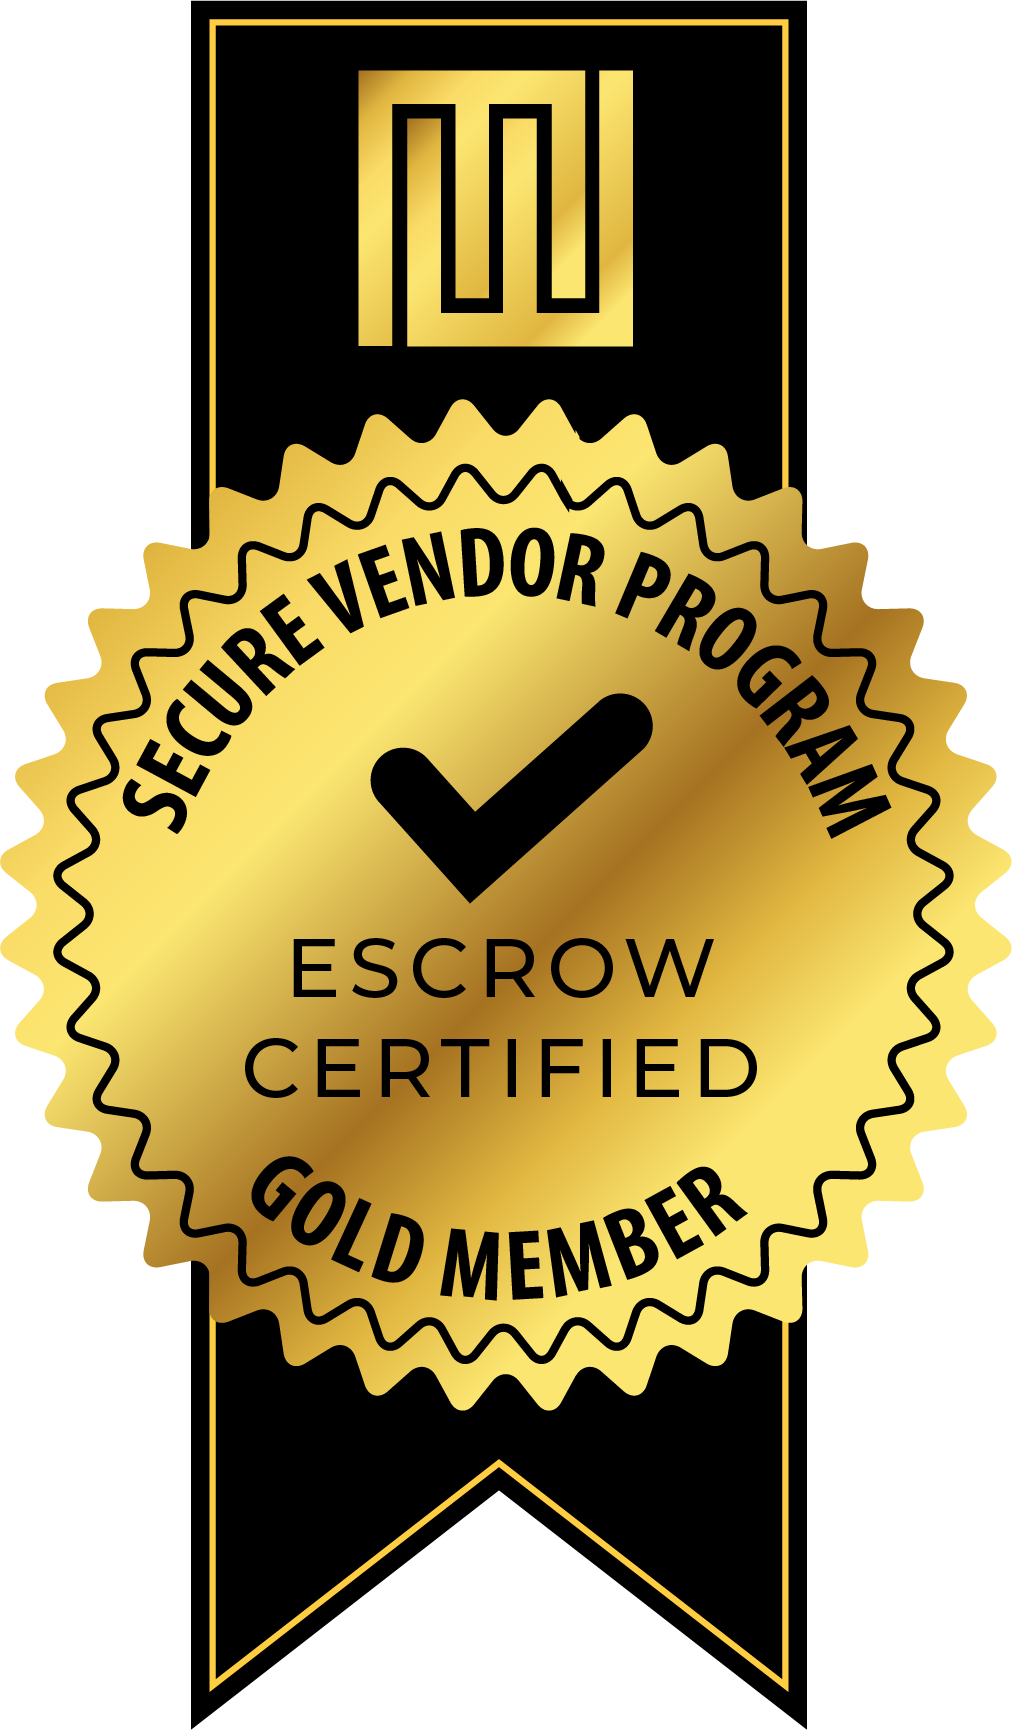 Meeting Escrow Gold Member